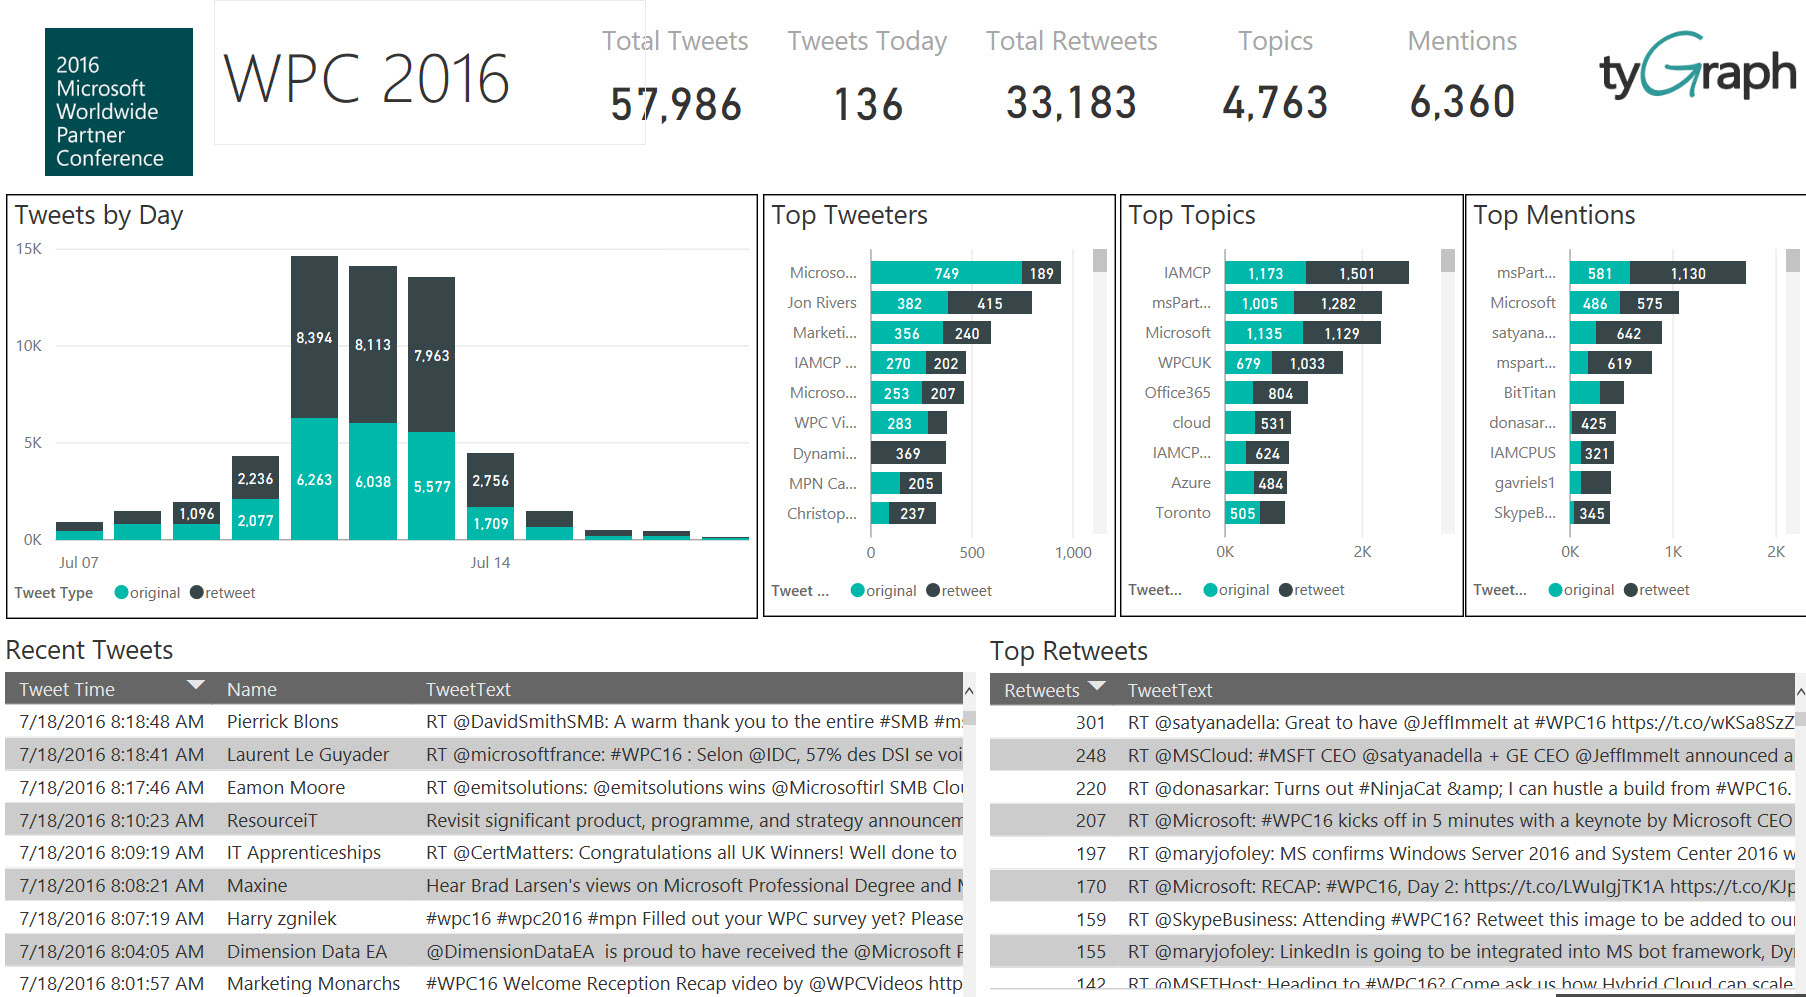 Microsoft Worldwide Partner Conference Twitter Analysis